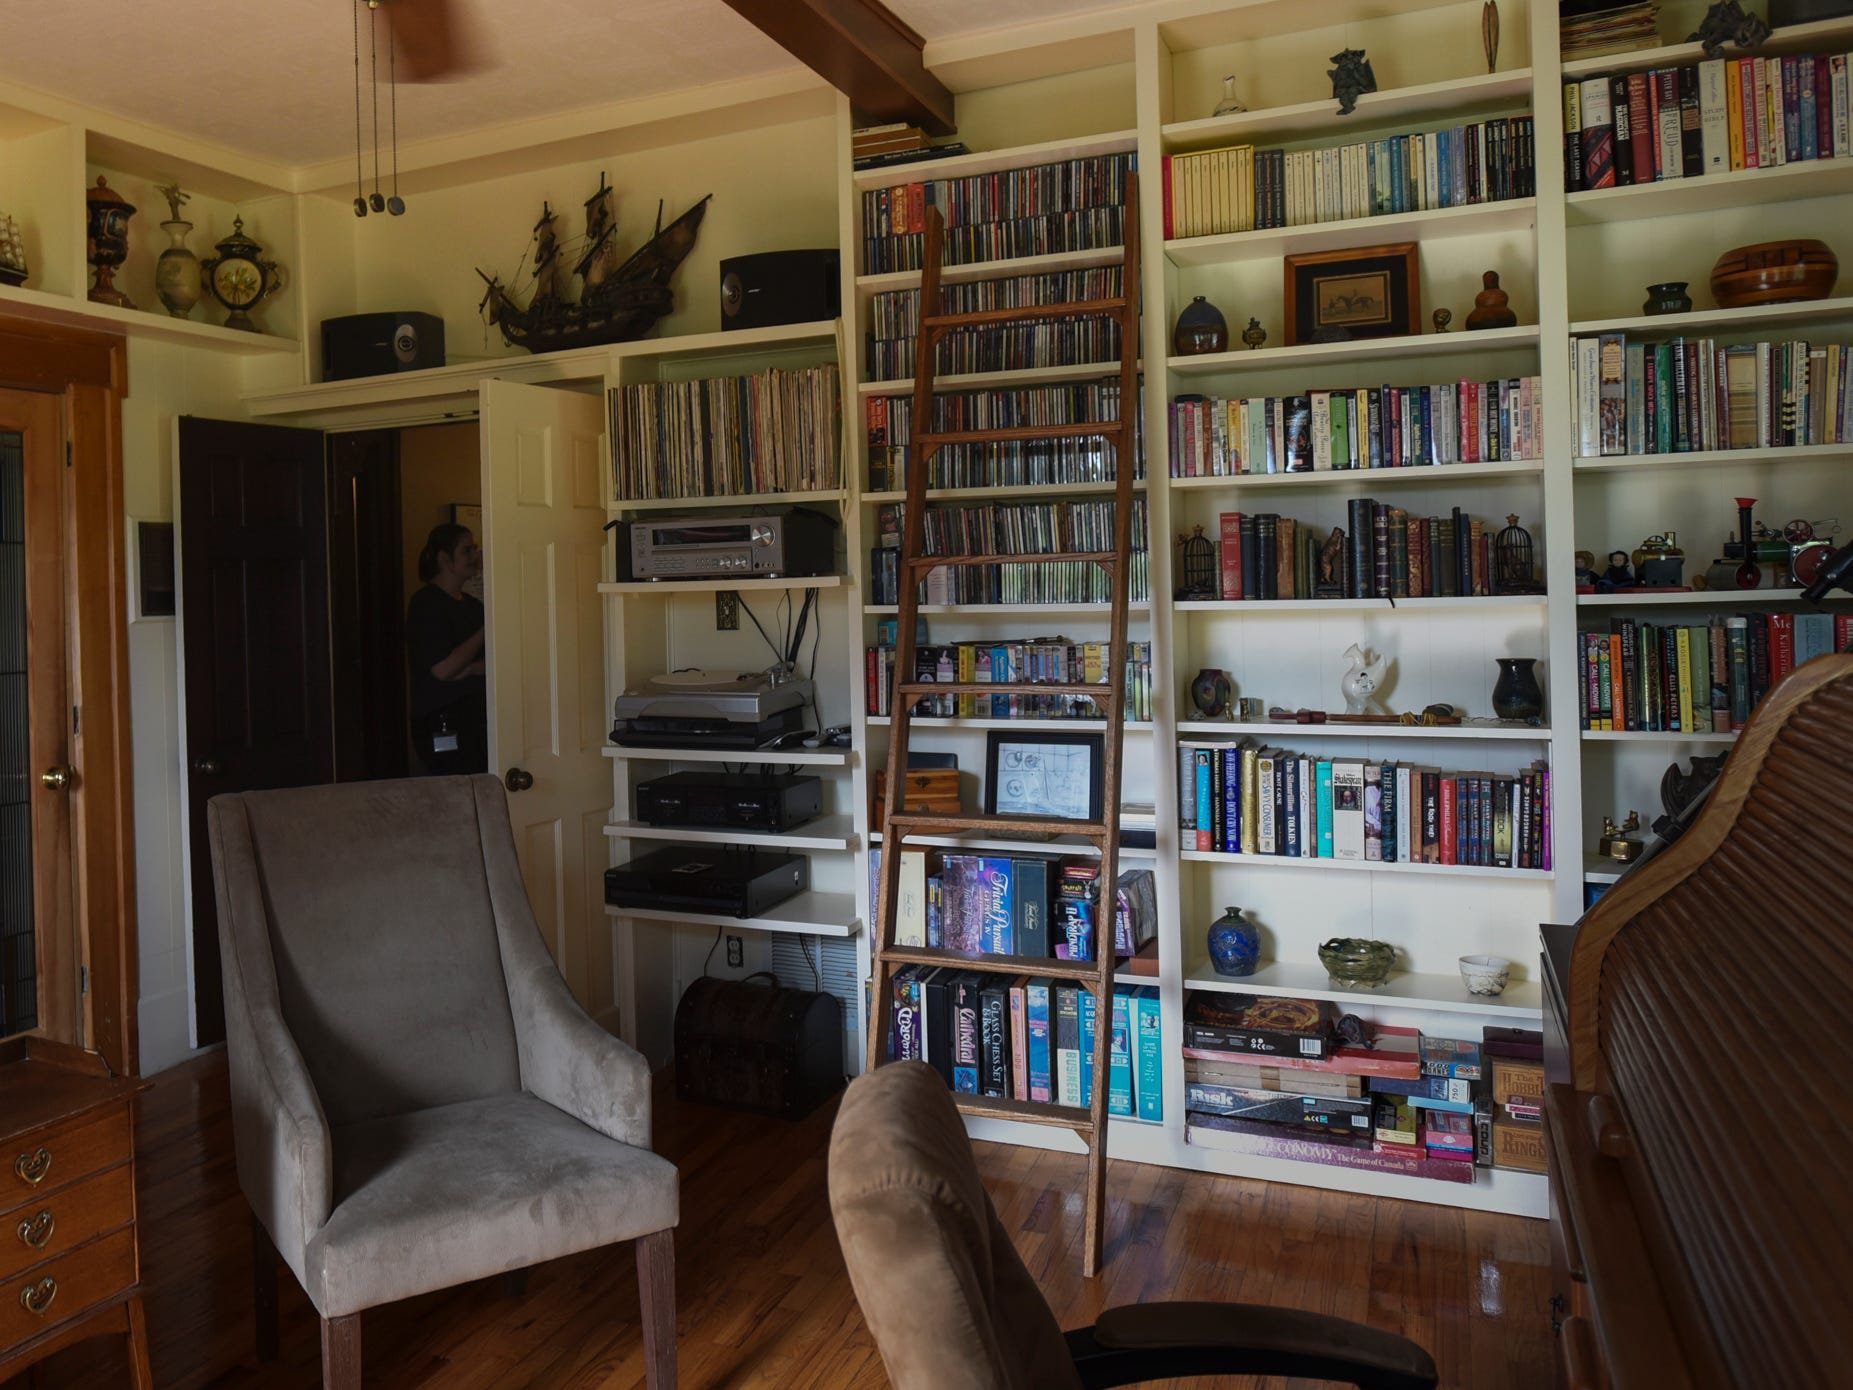 The library in the historic Shaft homestead in Shaftsburg.  The five bedroom farmhouse  was built in 1846.